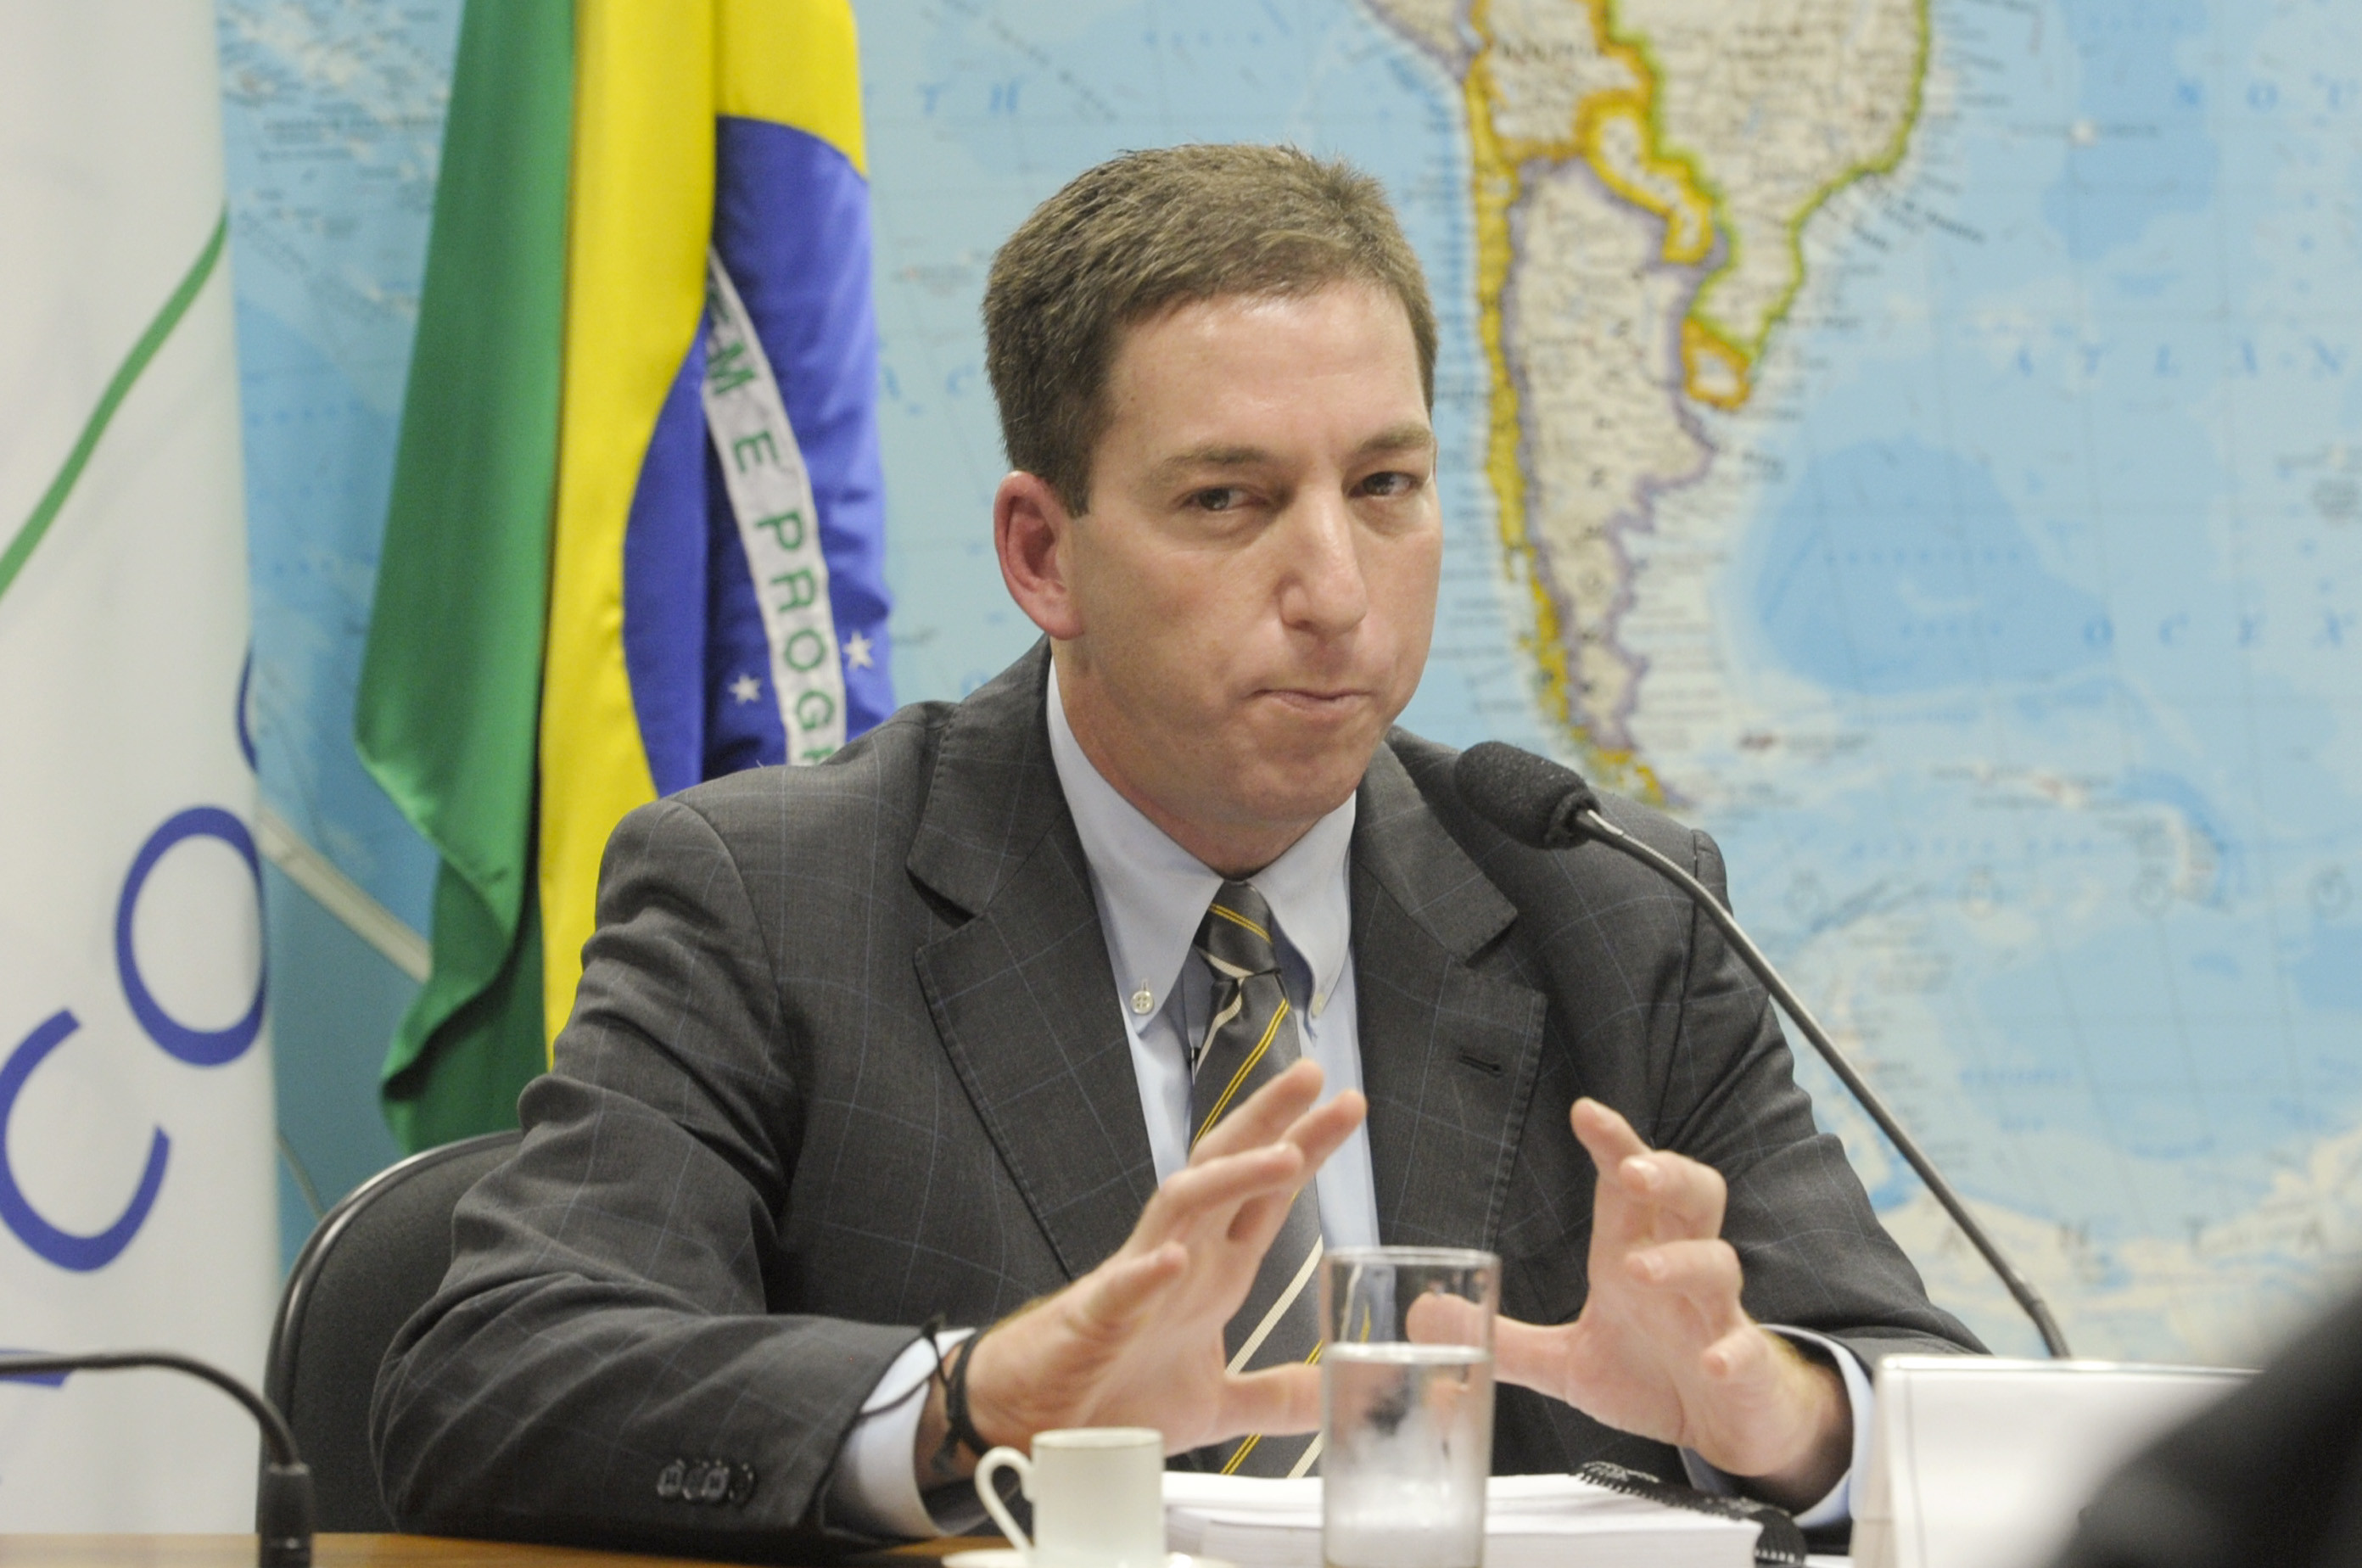 Jornalista Glenn Greenwald, do The Guardian,  participa de audiência pública